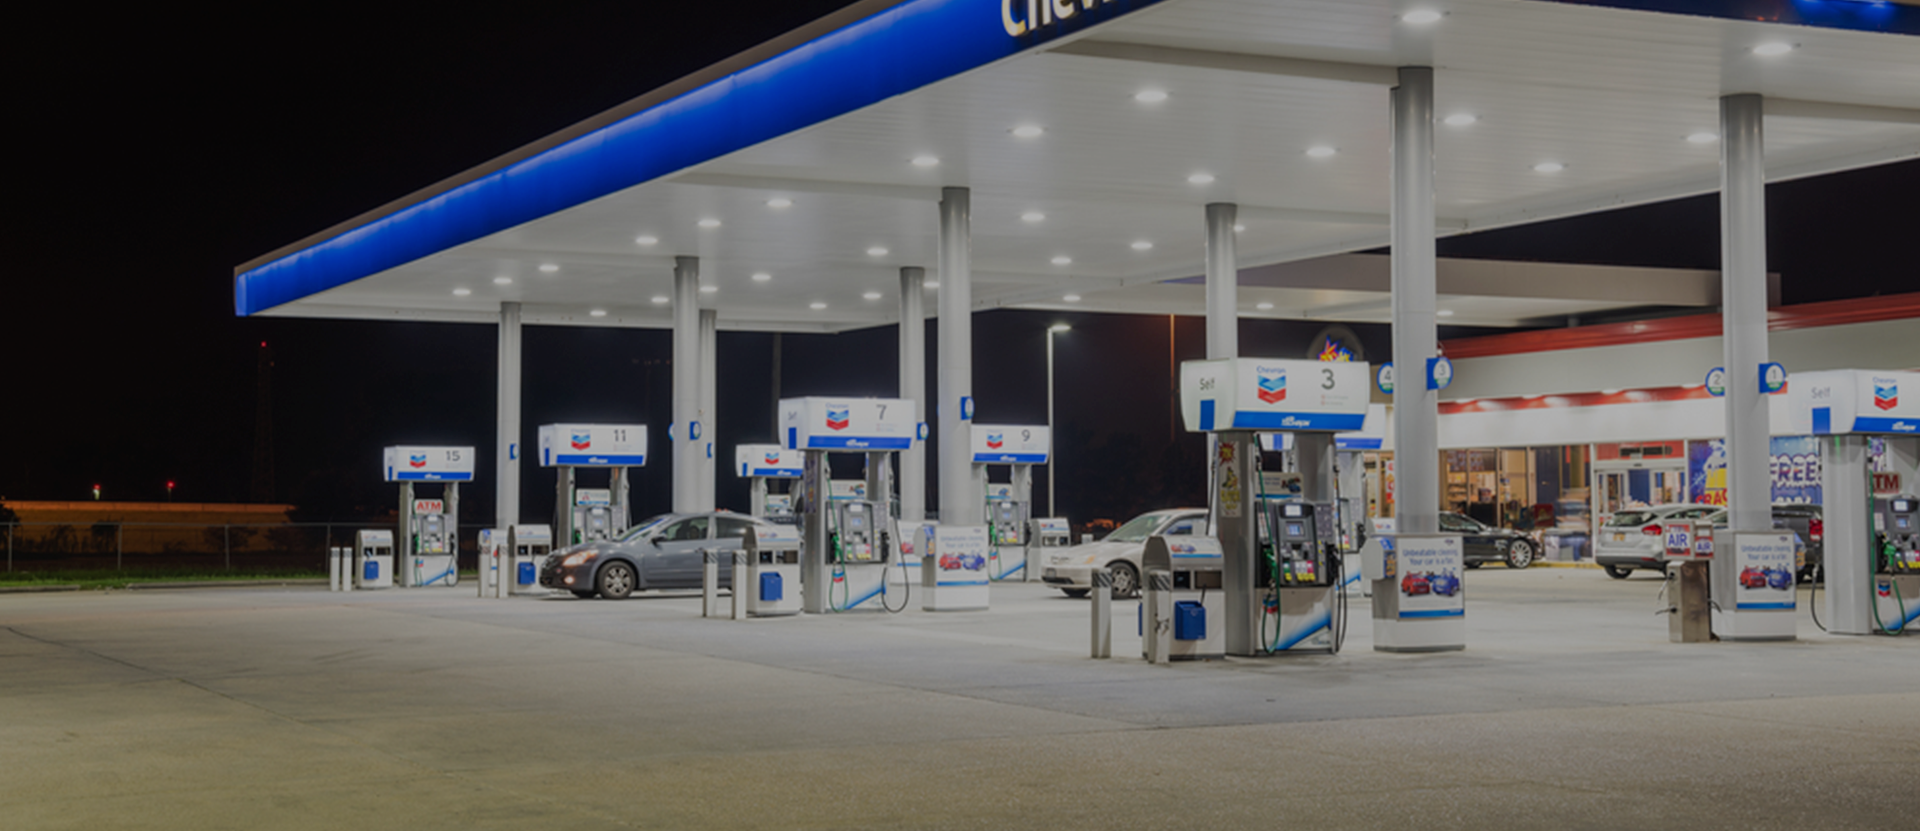 Chevron-forecourt-with-Gilbarco-dispensers